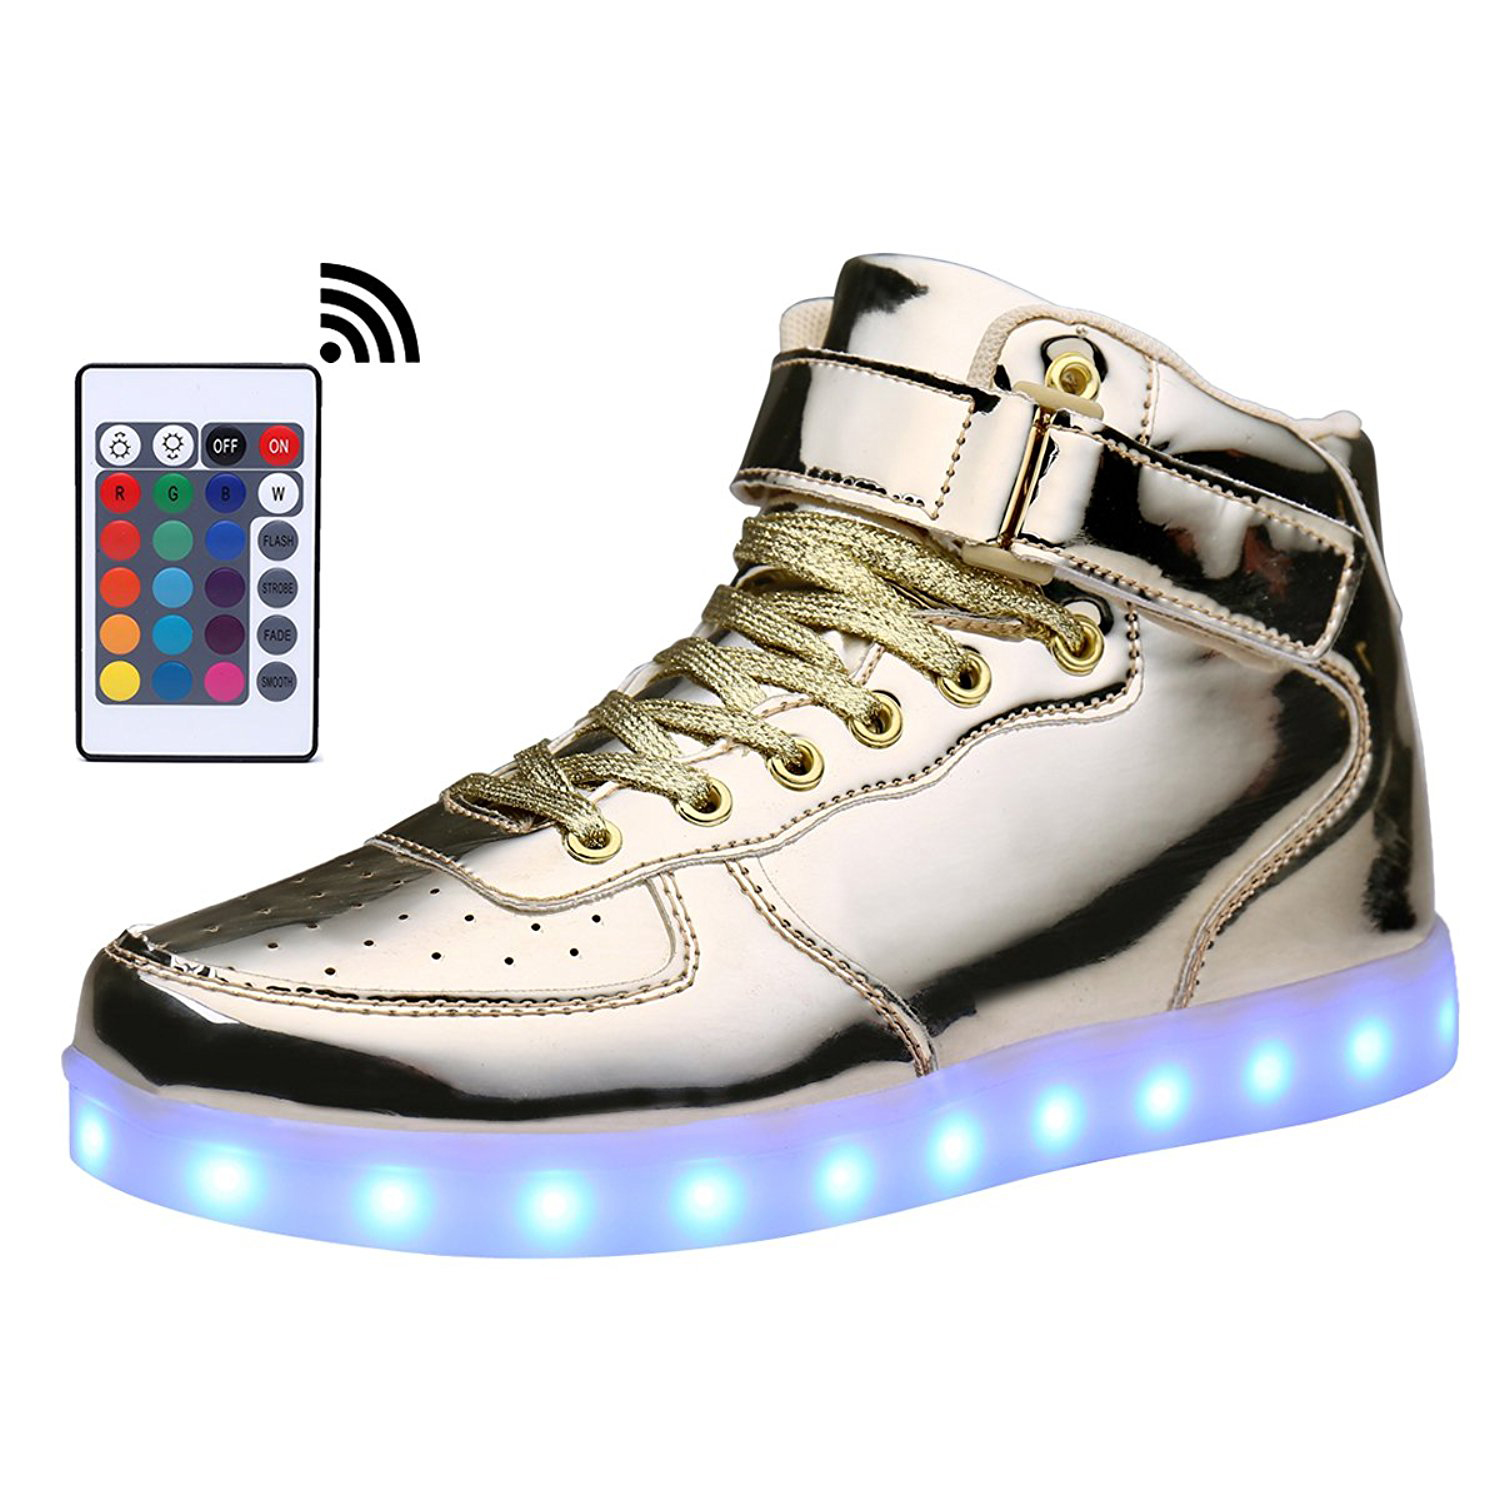 KRIATIV Adult&Kids USB Charging High Top LED Shoes Light Up Flashing Sneakers Glowing Luminous Slippers for Boy&Girl Light Shoe